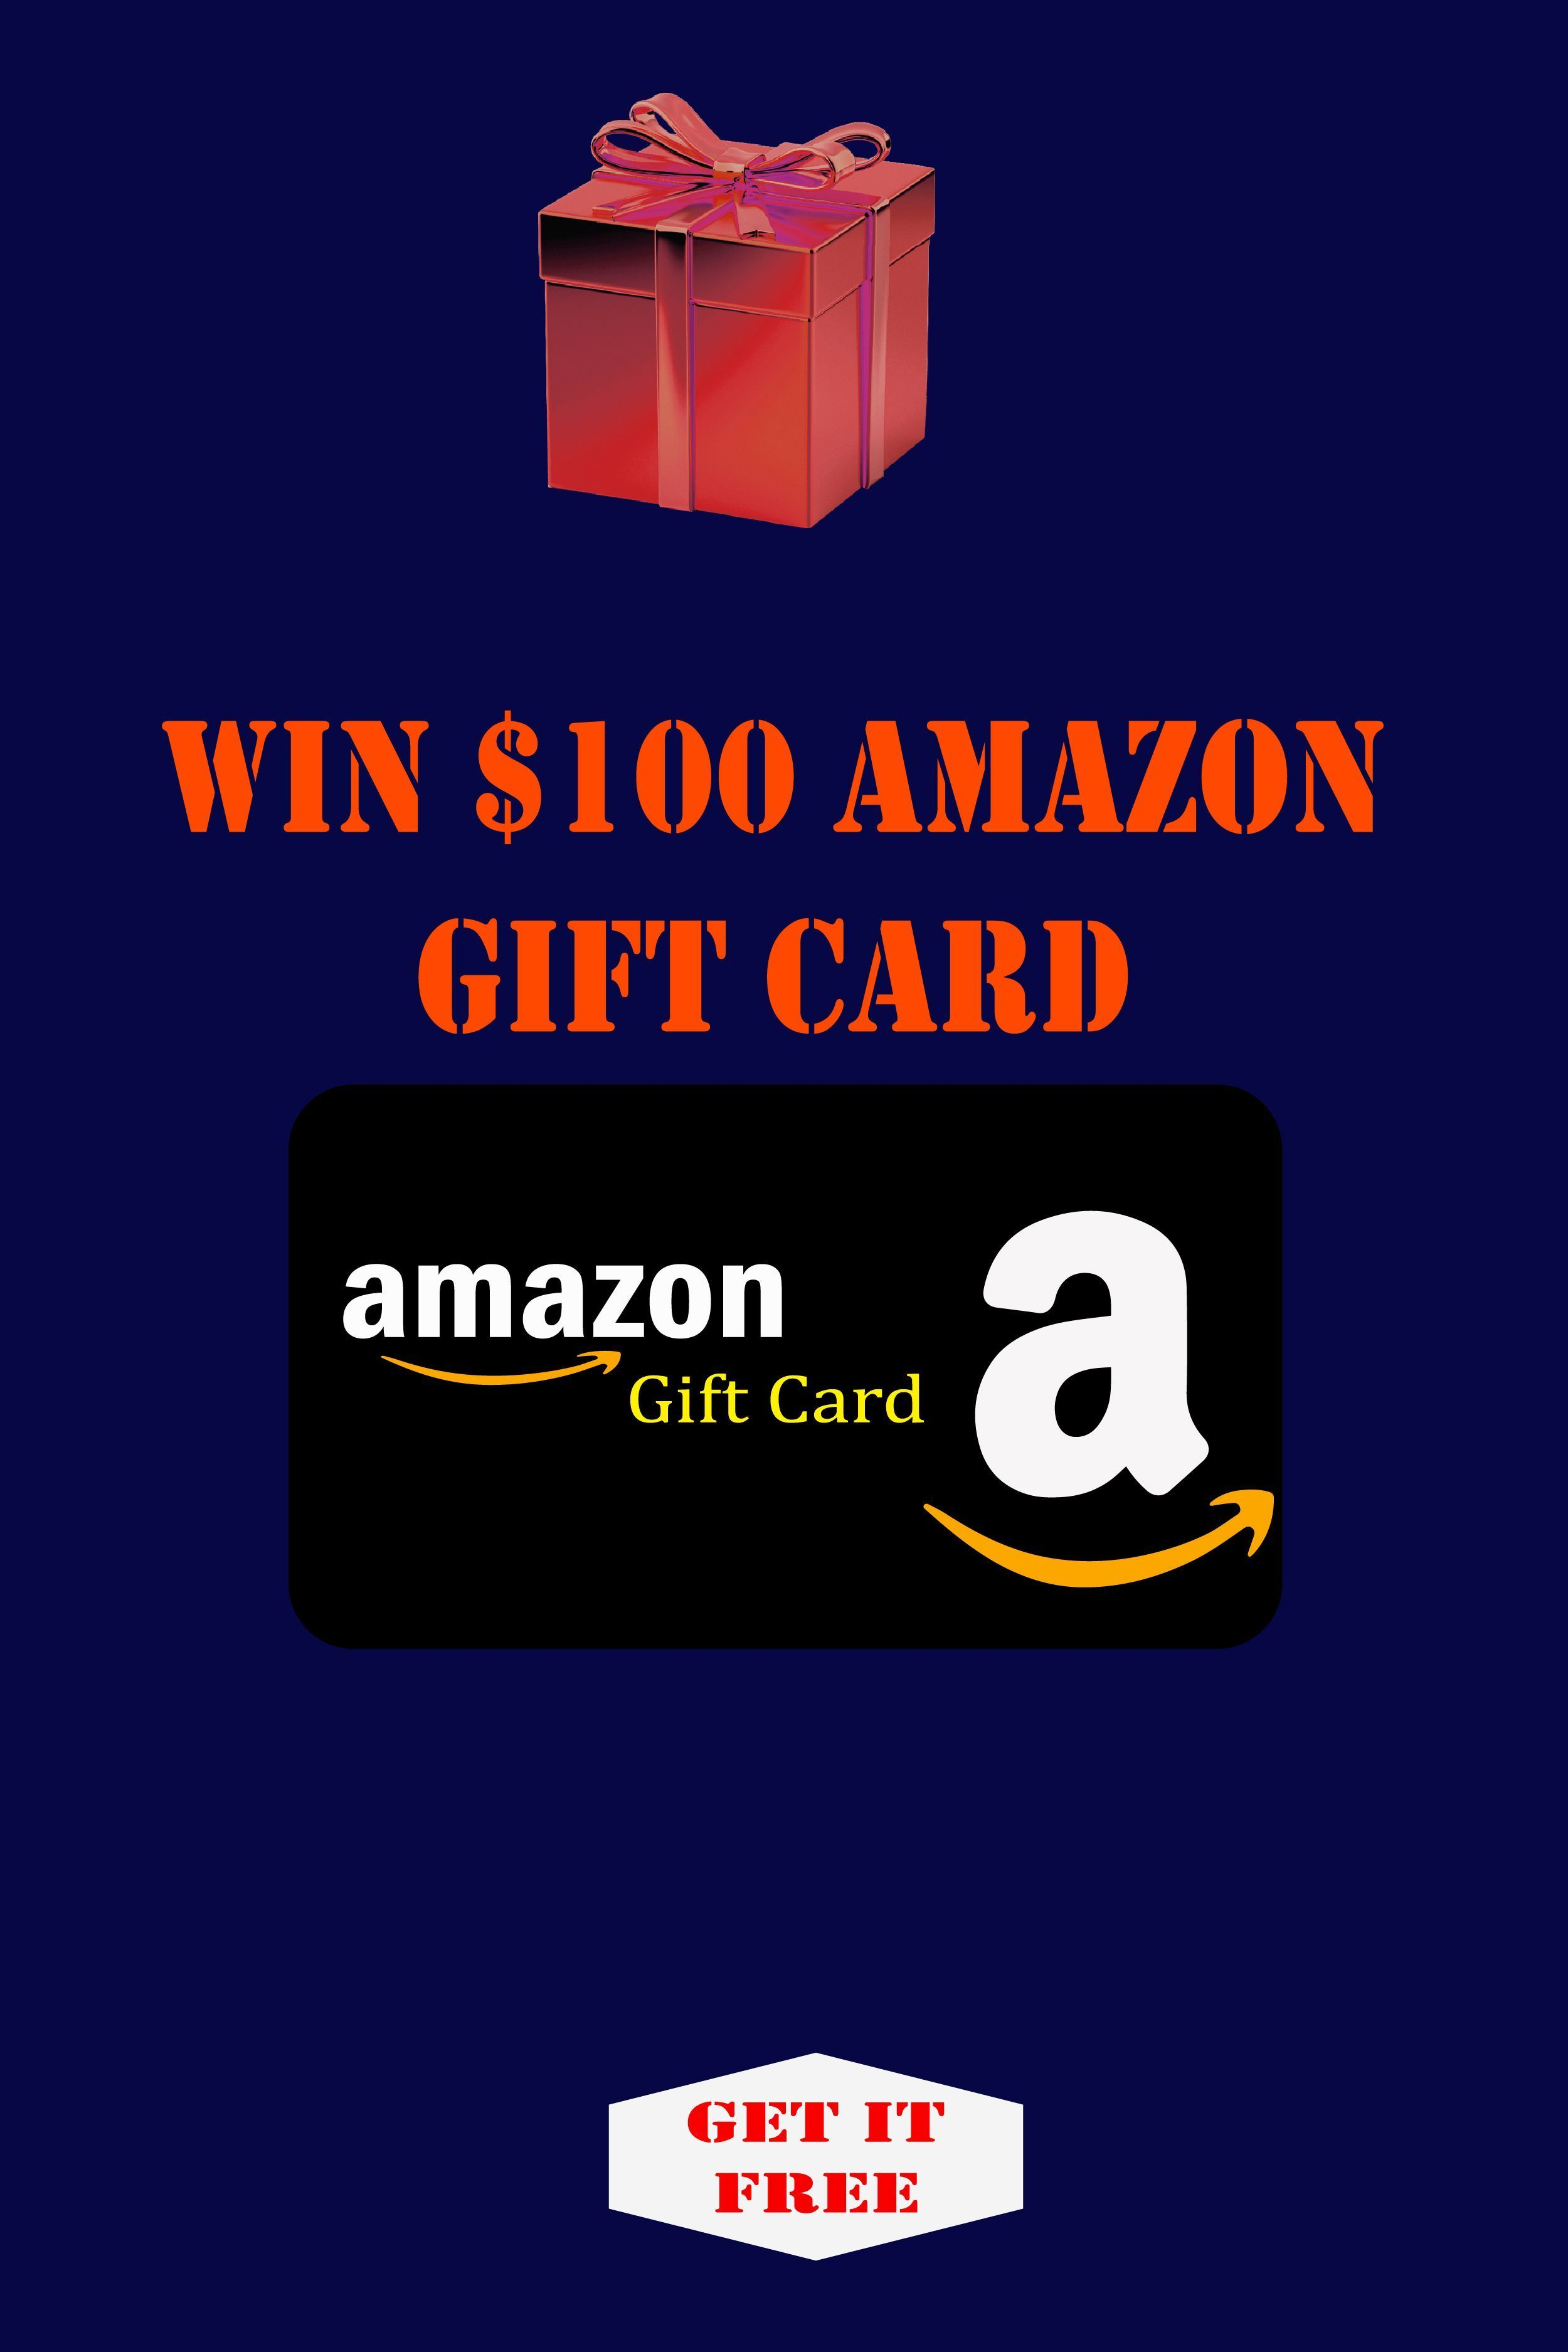 Photo of Amazon gift card giveaway | Get $ 100 Amazon Gift Card Free …